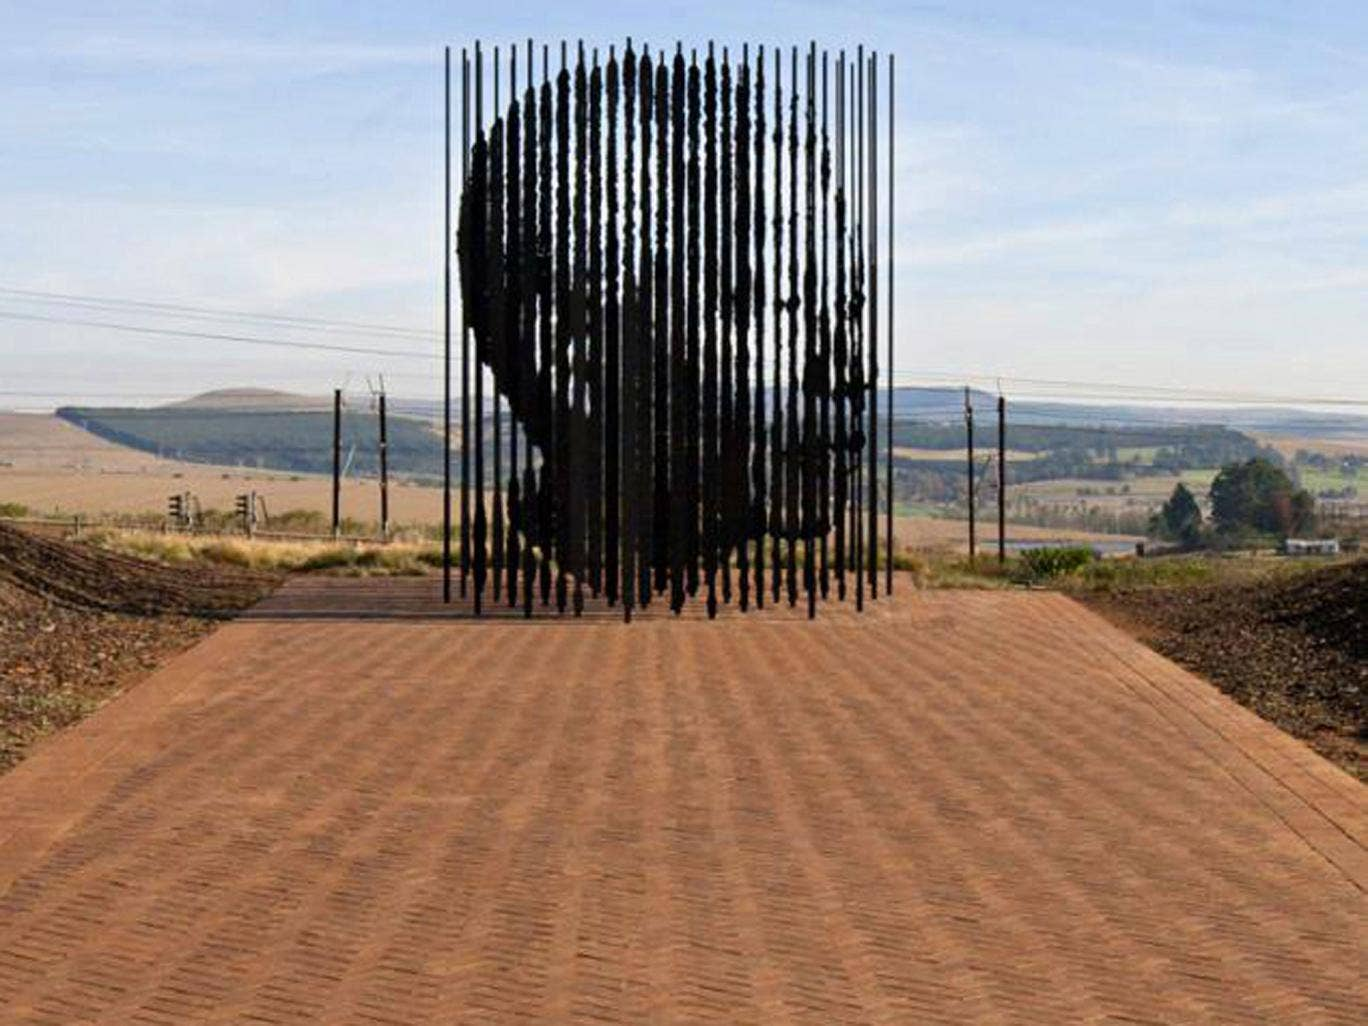 'Release' sculpture near Howick